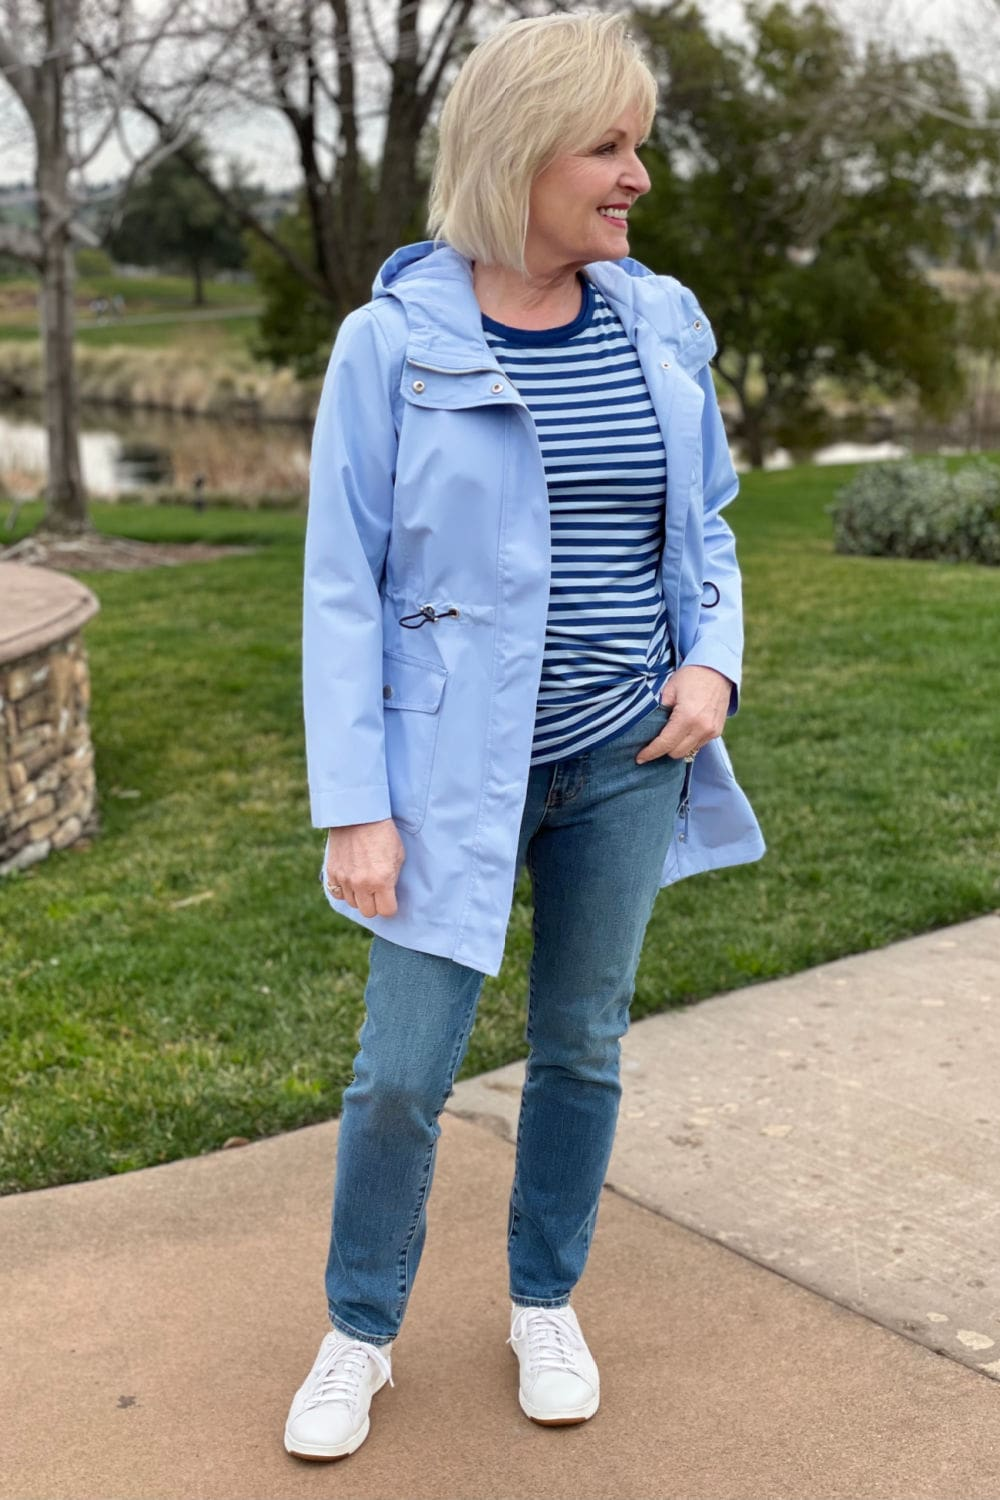 woman wearing blue stried top, blue jeans, and blue coat